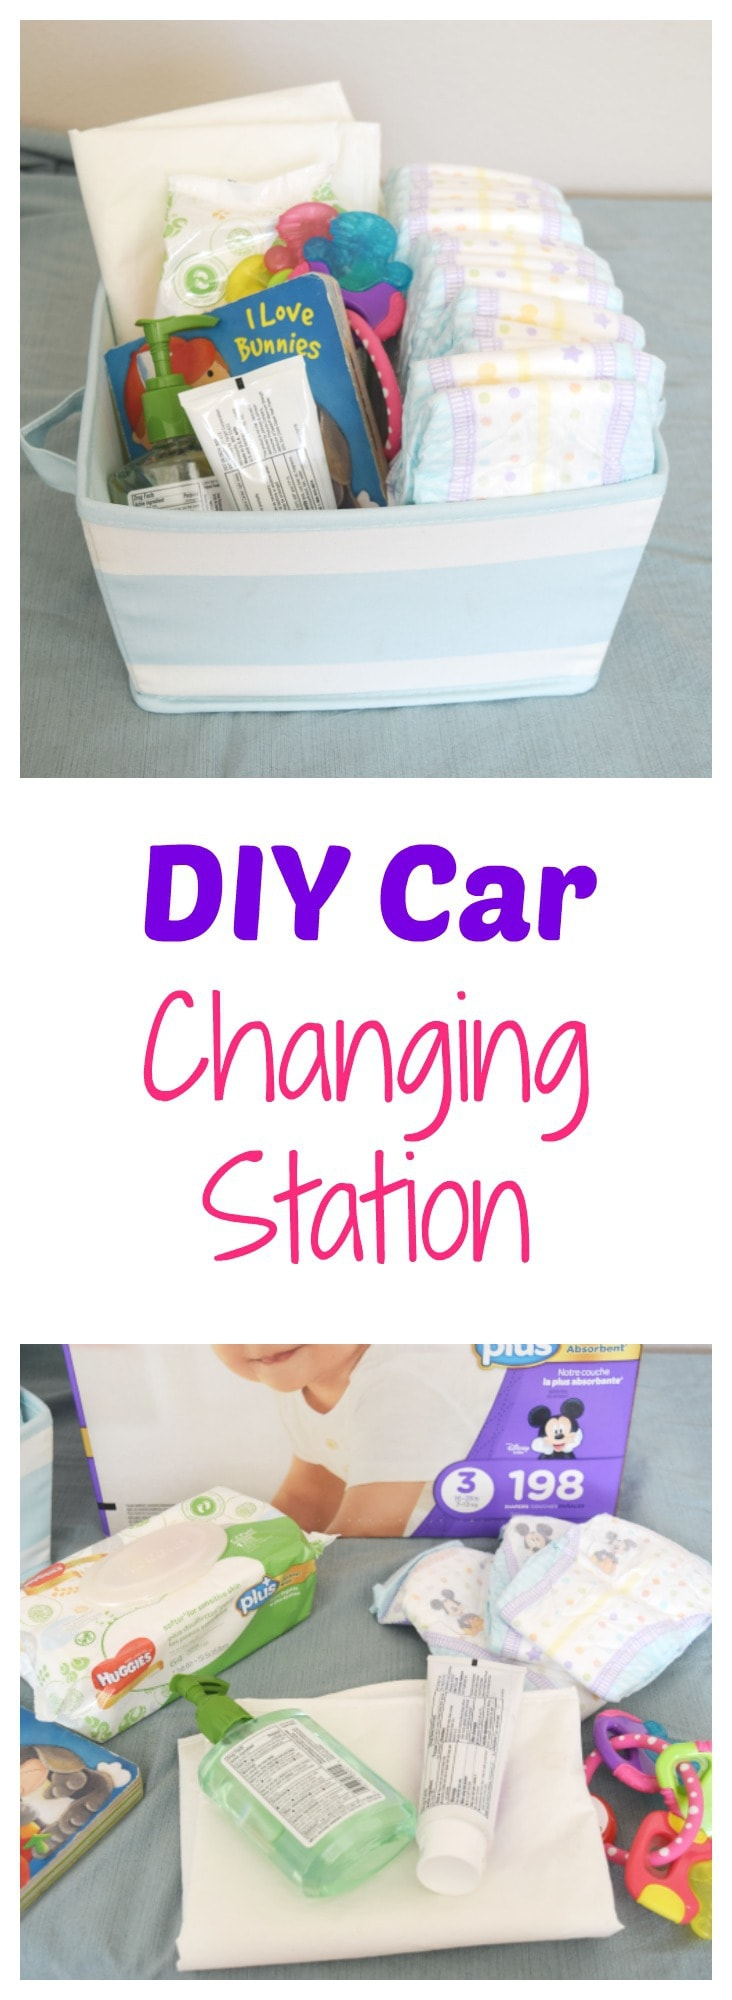 Having a Car Changing Station set up with @huggies Plus makes life so much easier when out and about with my littles! #PlusUpYourFall #ad